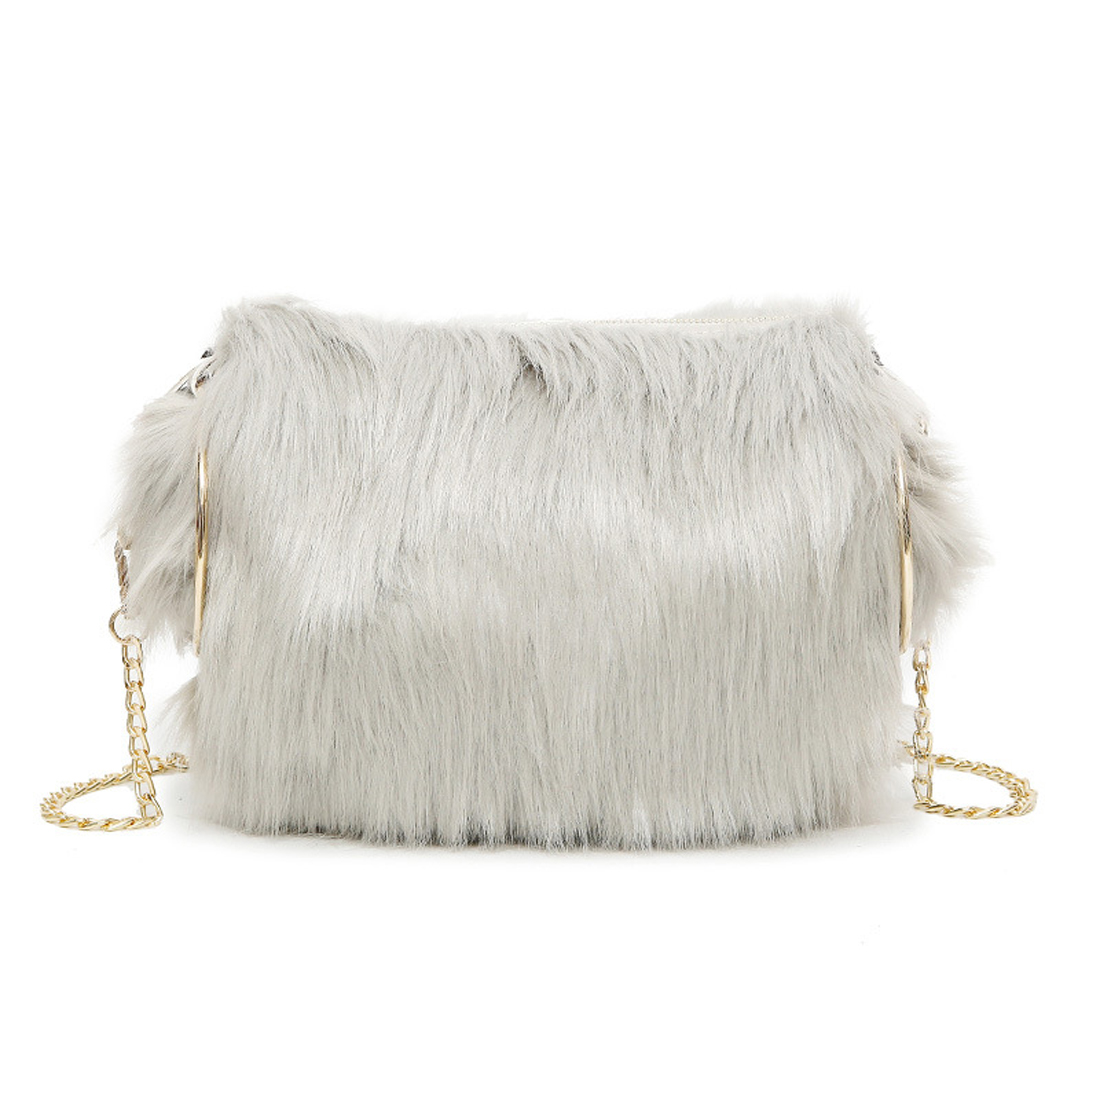 202e0fbdd6 2017 Winter Women Faux Fur Handbags Luxury bucket bags girl s Evening Bag  round handle chain shoulder bags party clutch bags -in Top-Handle Bags from  ...